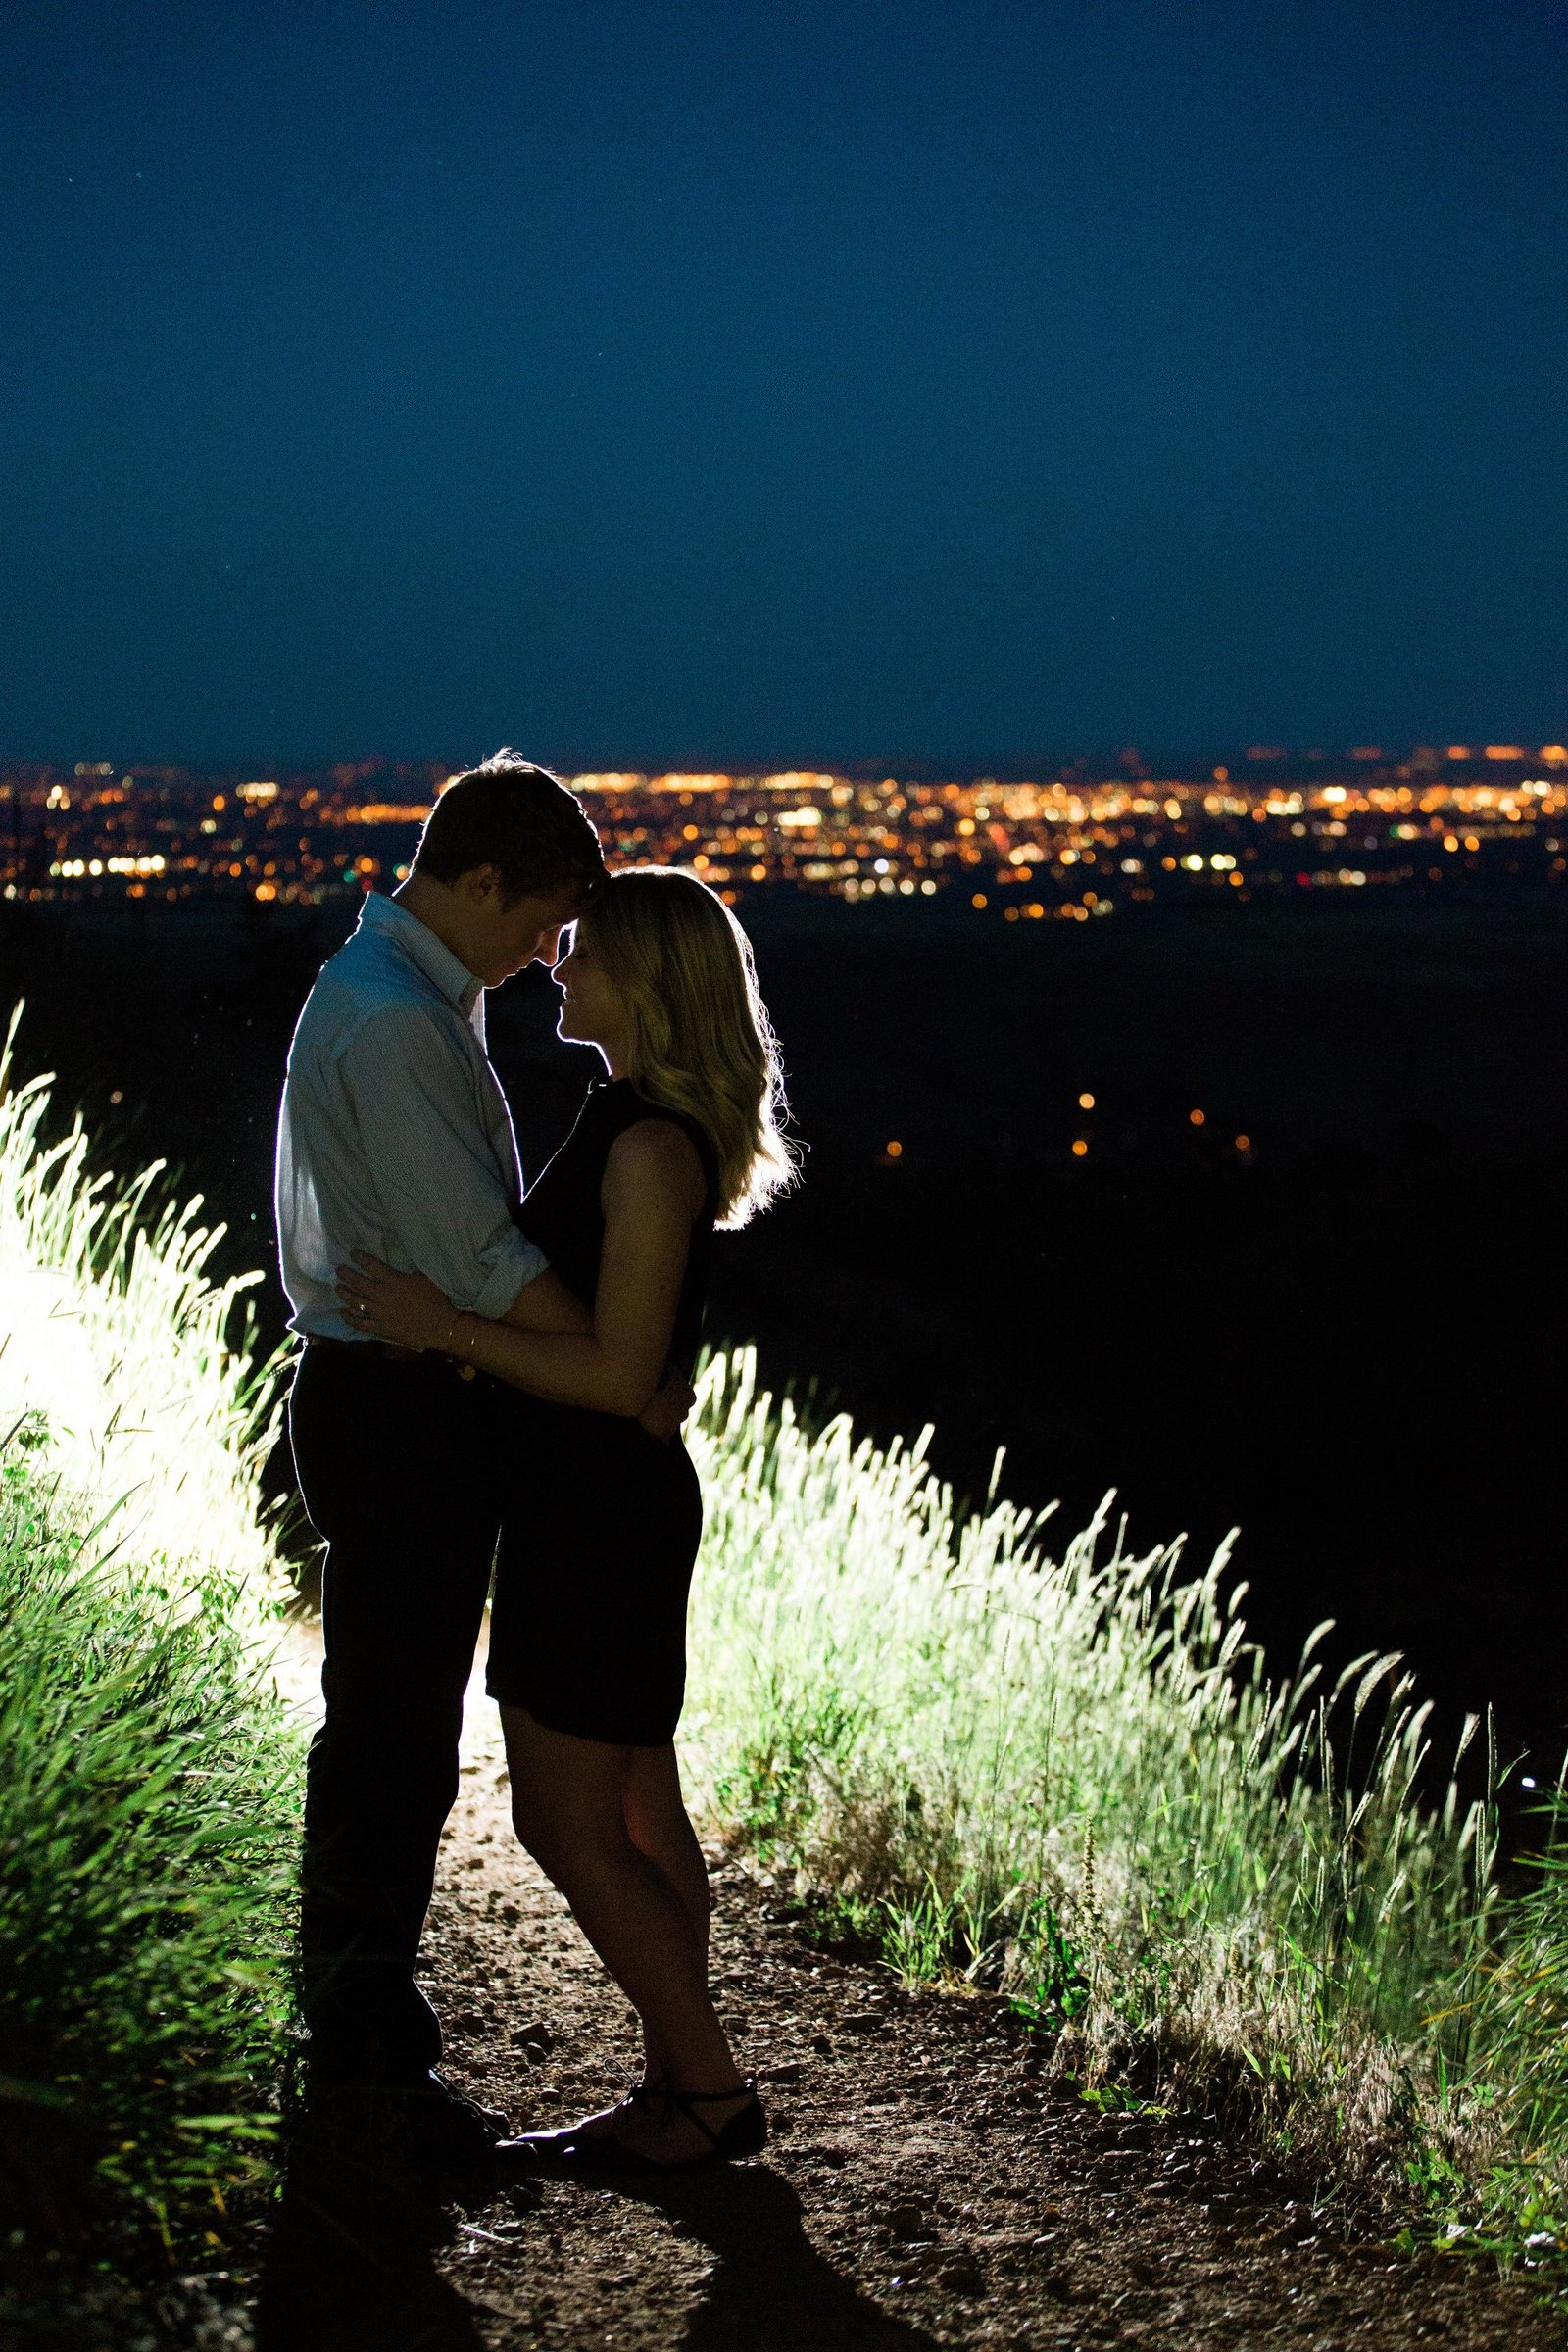 Engagements -Denver Lookout Mountain Engagement Session Golden Colorado Wedding Photographer Overlook City Lights Nature Outdoors Valley Light Couple (2)